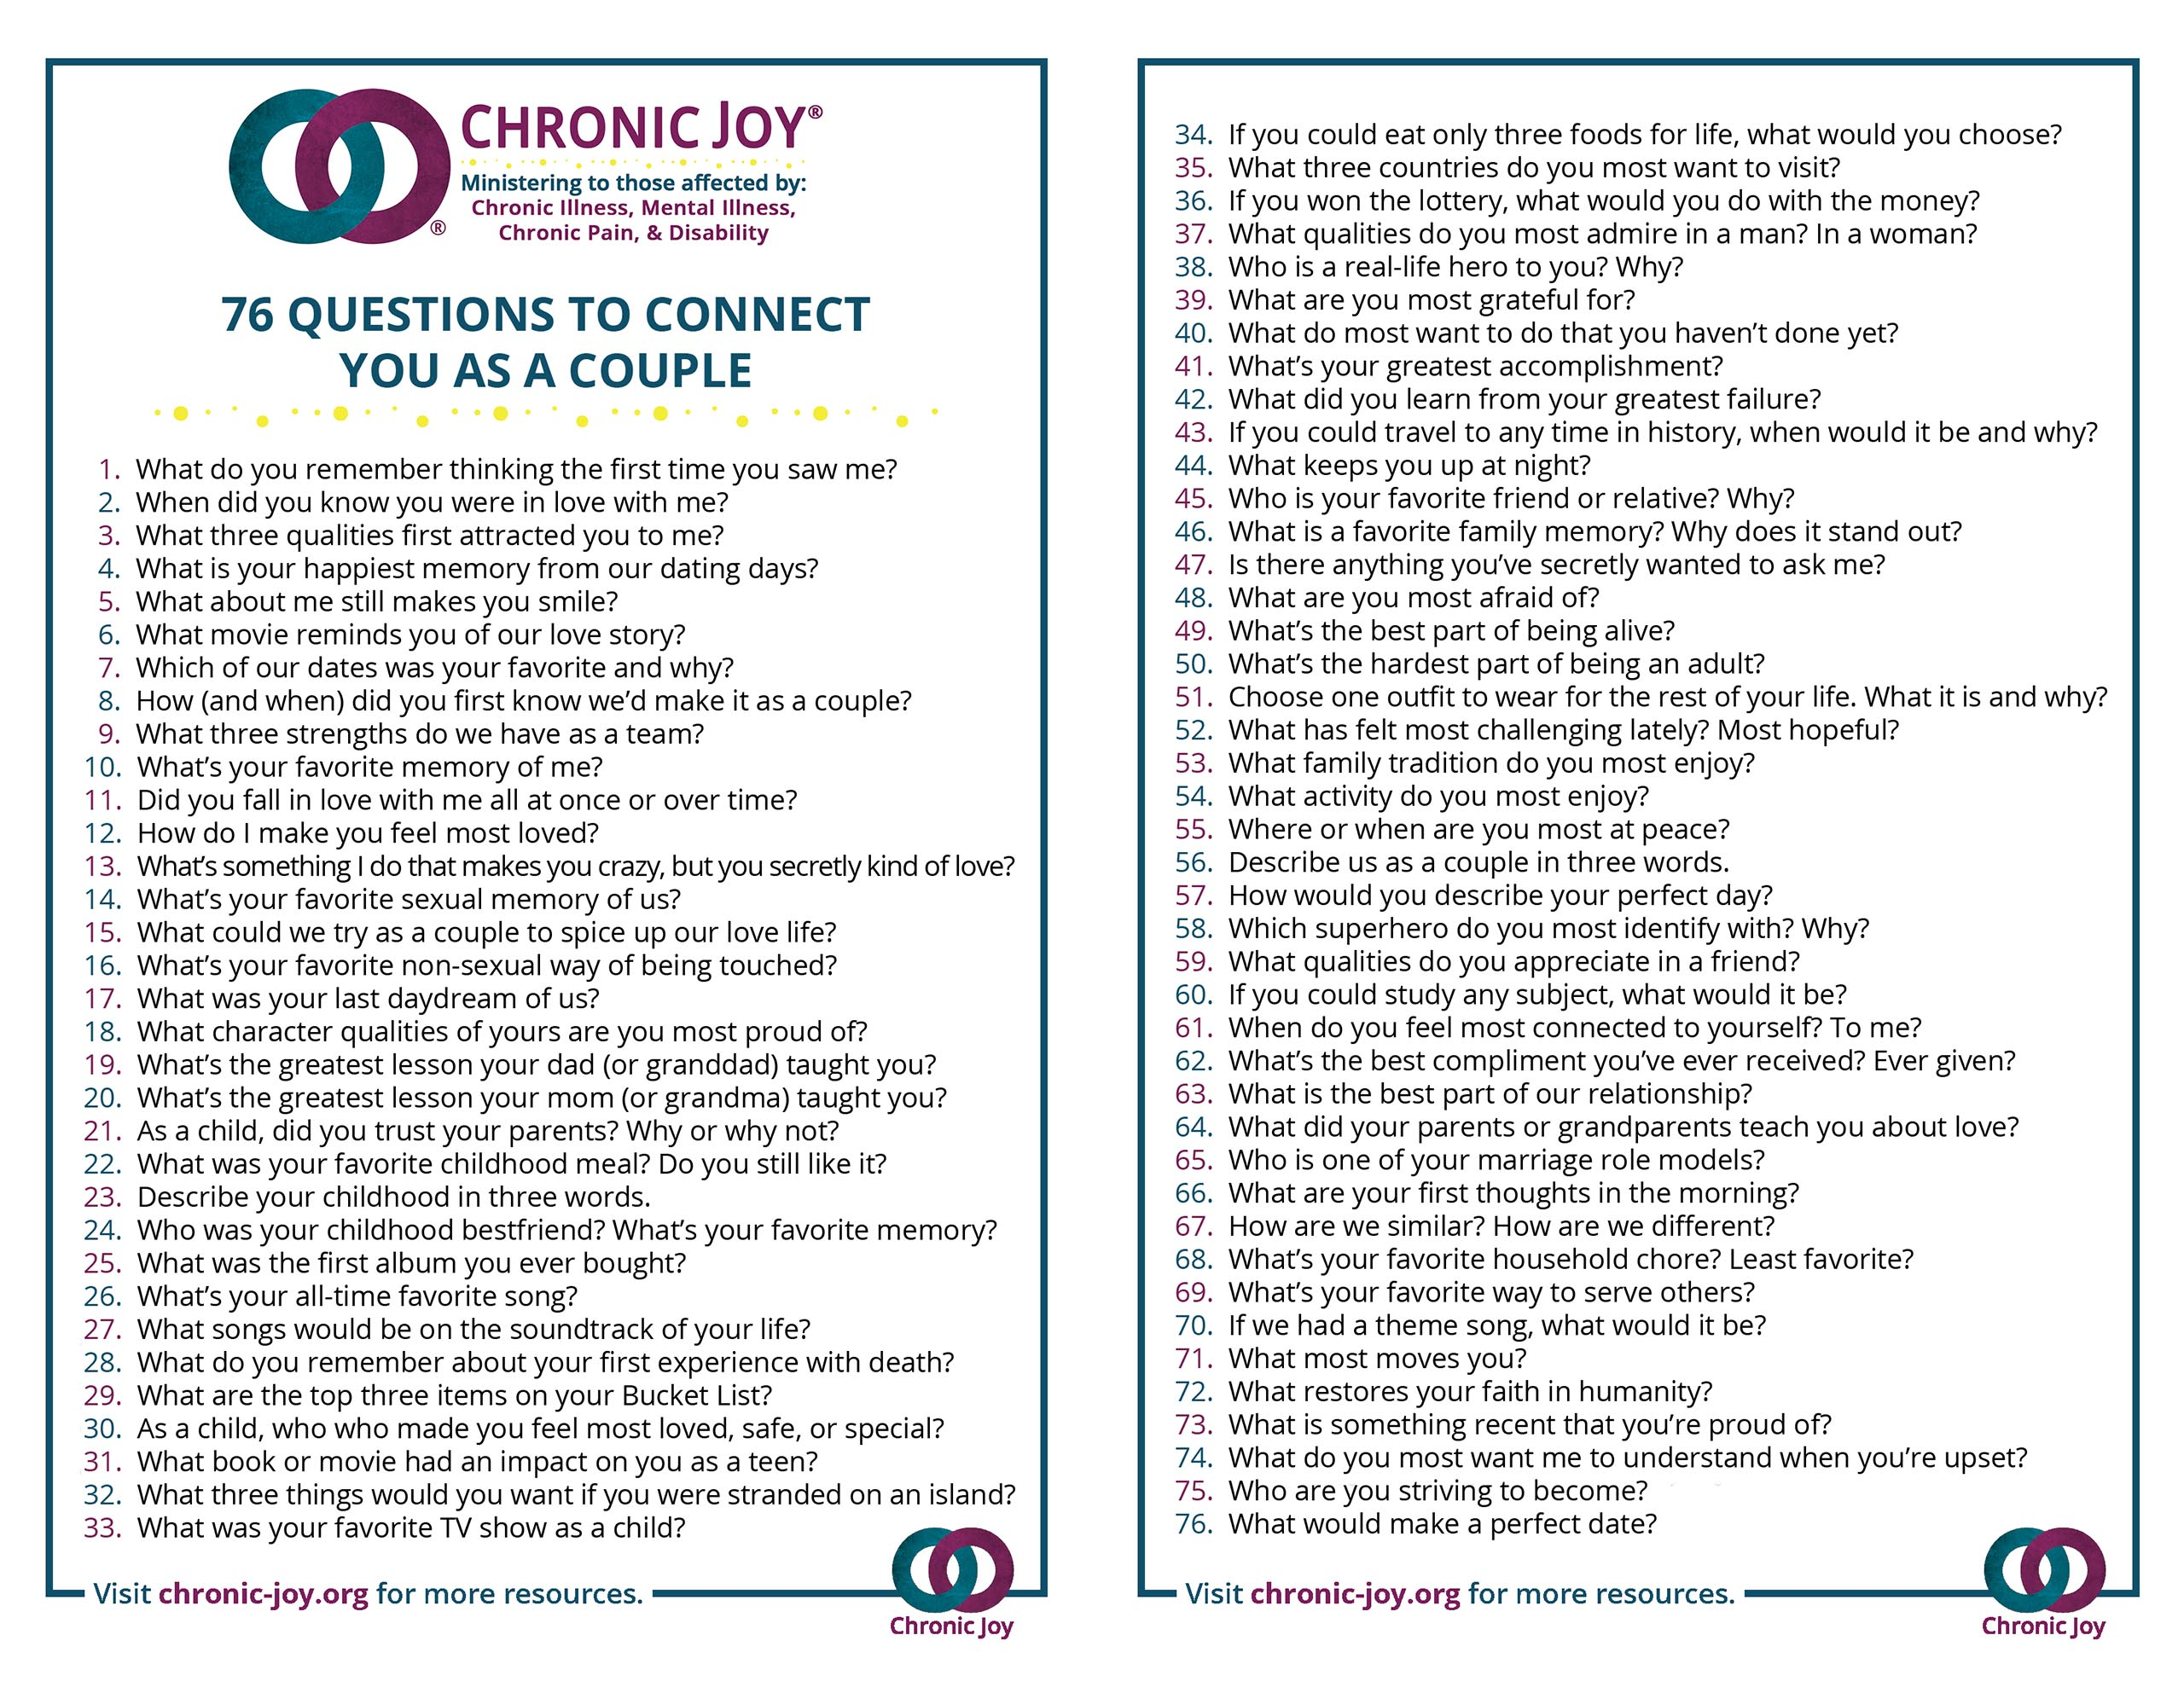 76 Questions to Connect You as a Couple